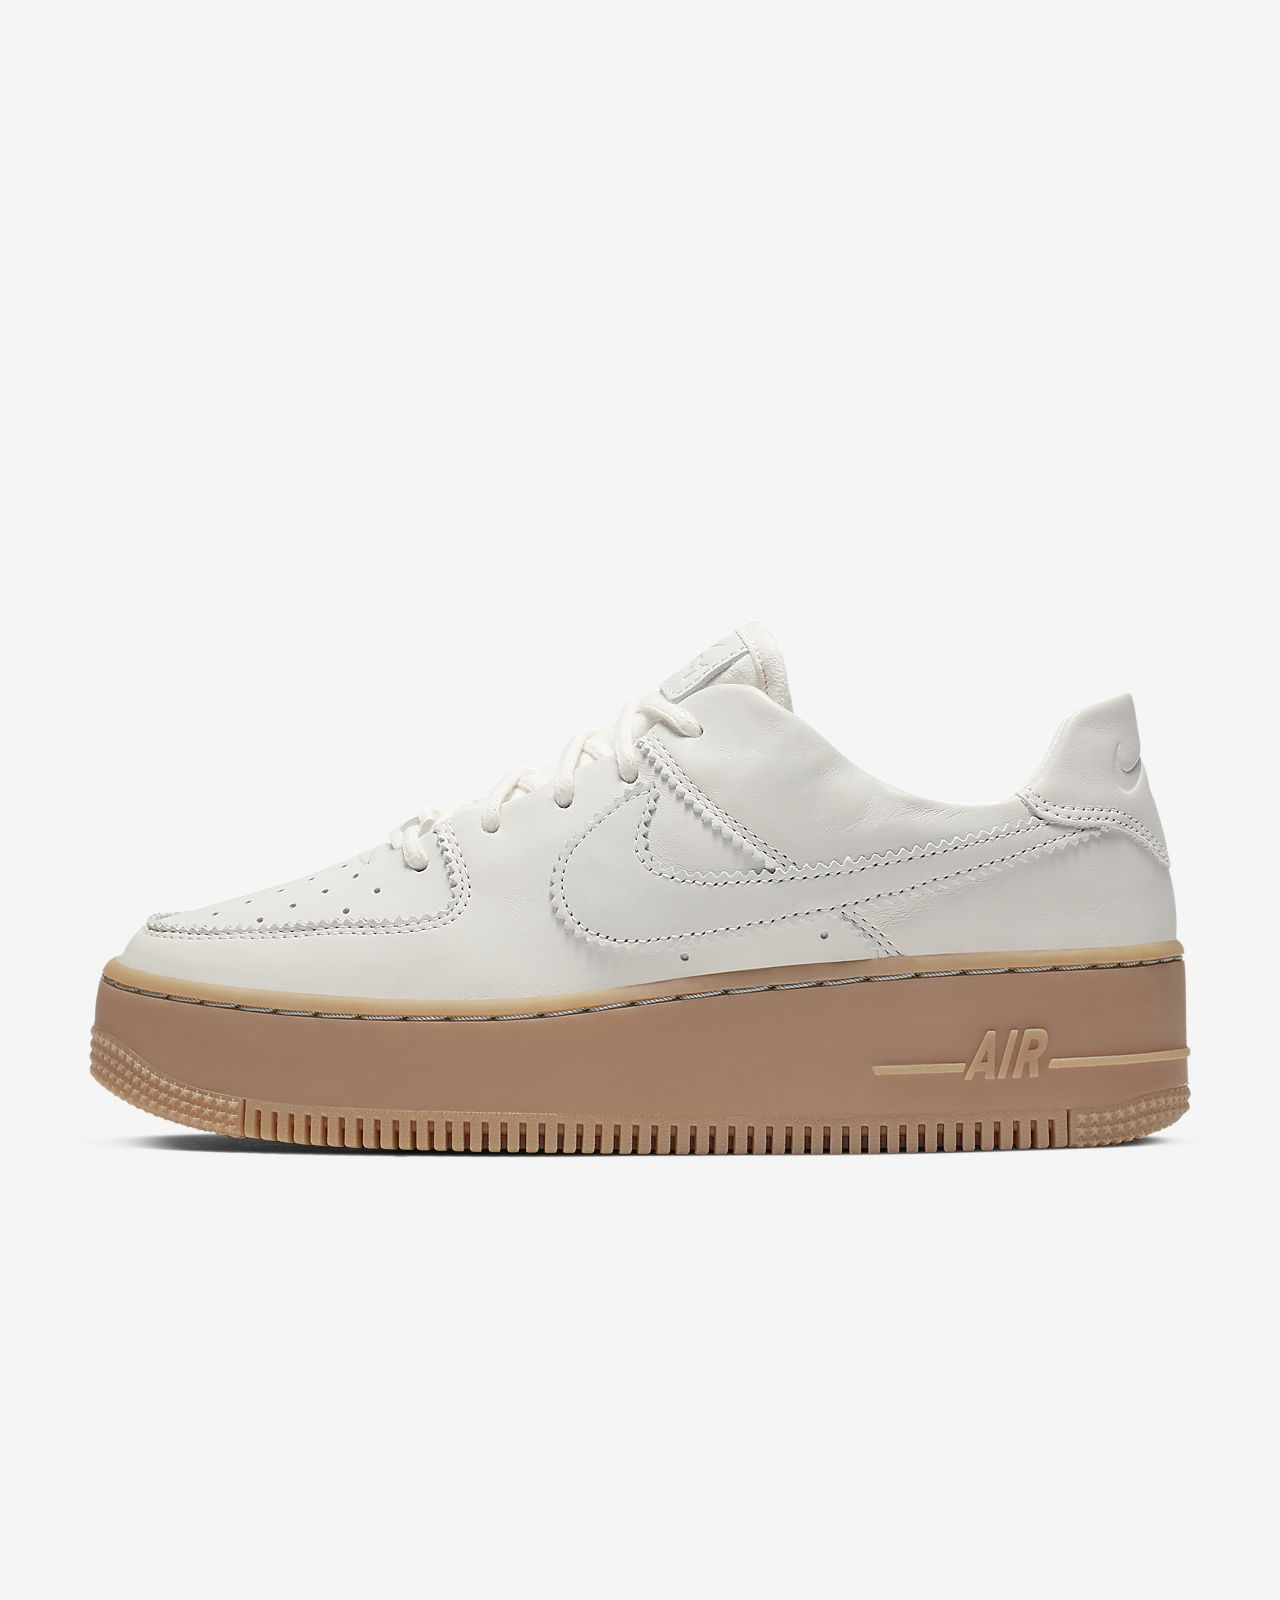 94161e1bcb660 Nike Air Force 1 Sage Low LX Women's Shoe. Nike.com LU